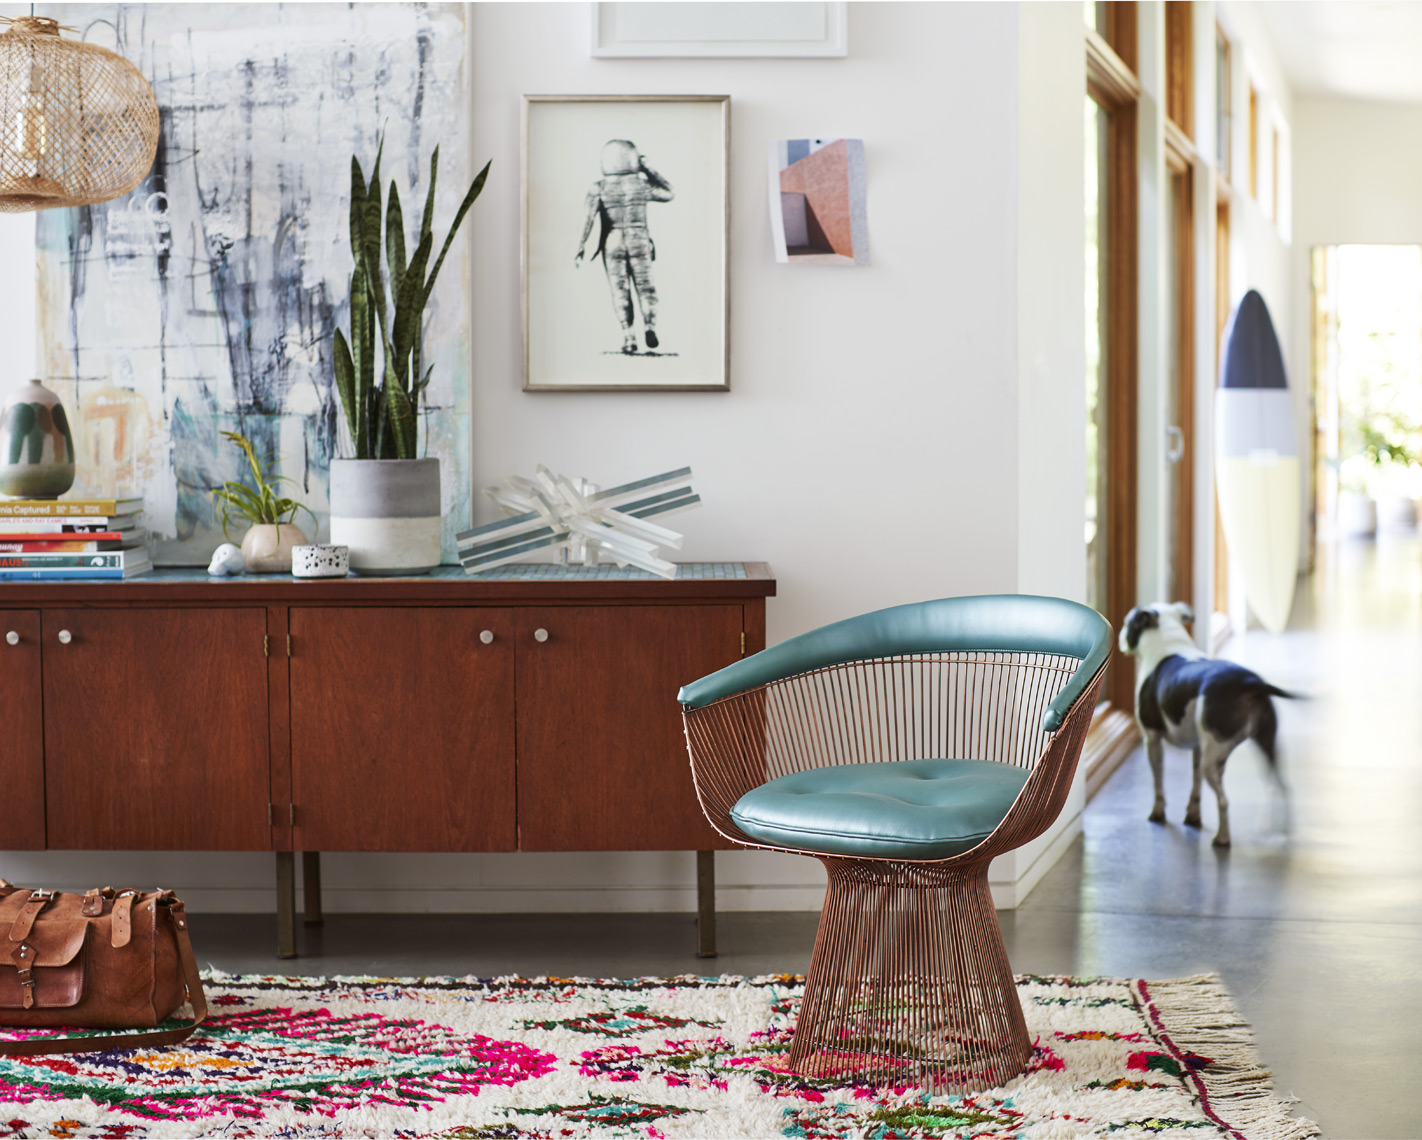 Credenza and copper chair in modern house art painting  print lamp dog Sean Dagen Photography